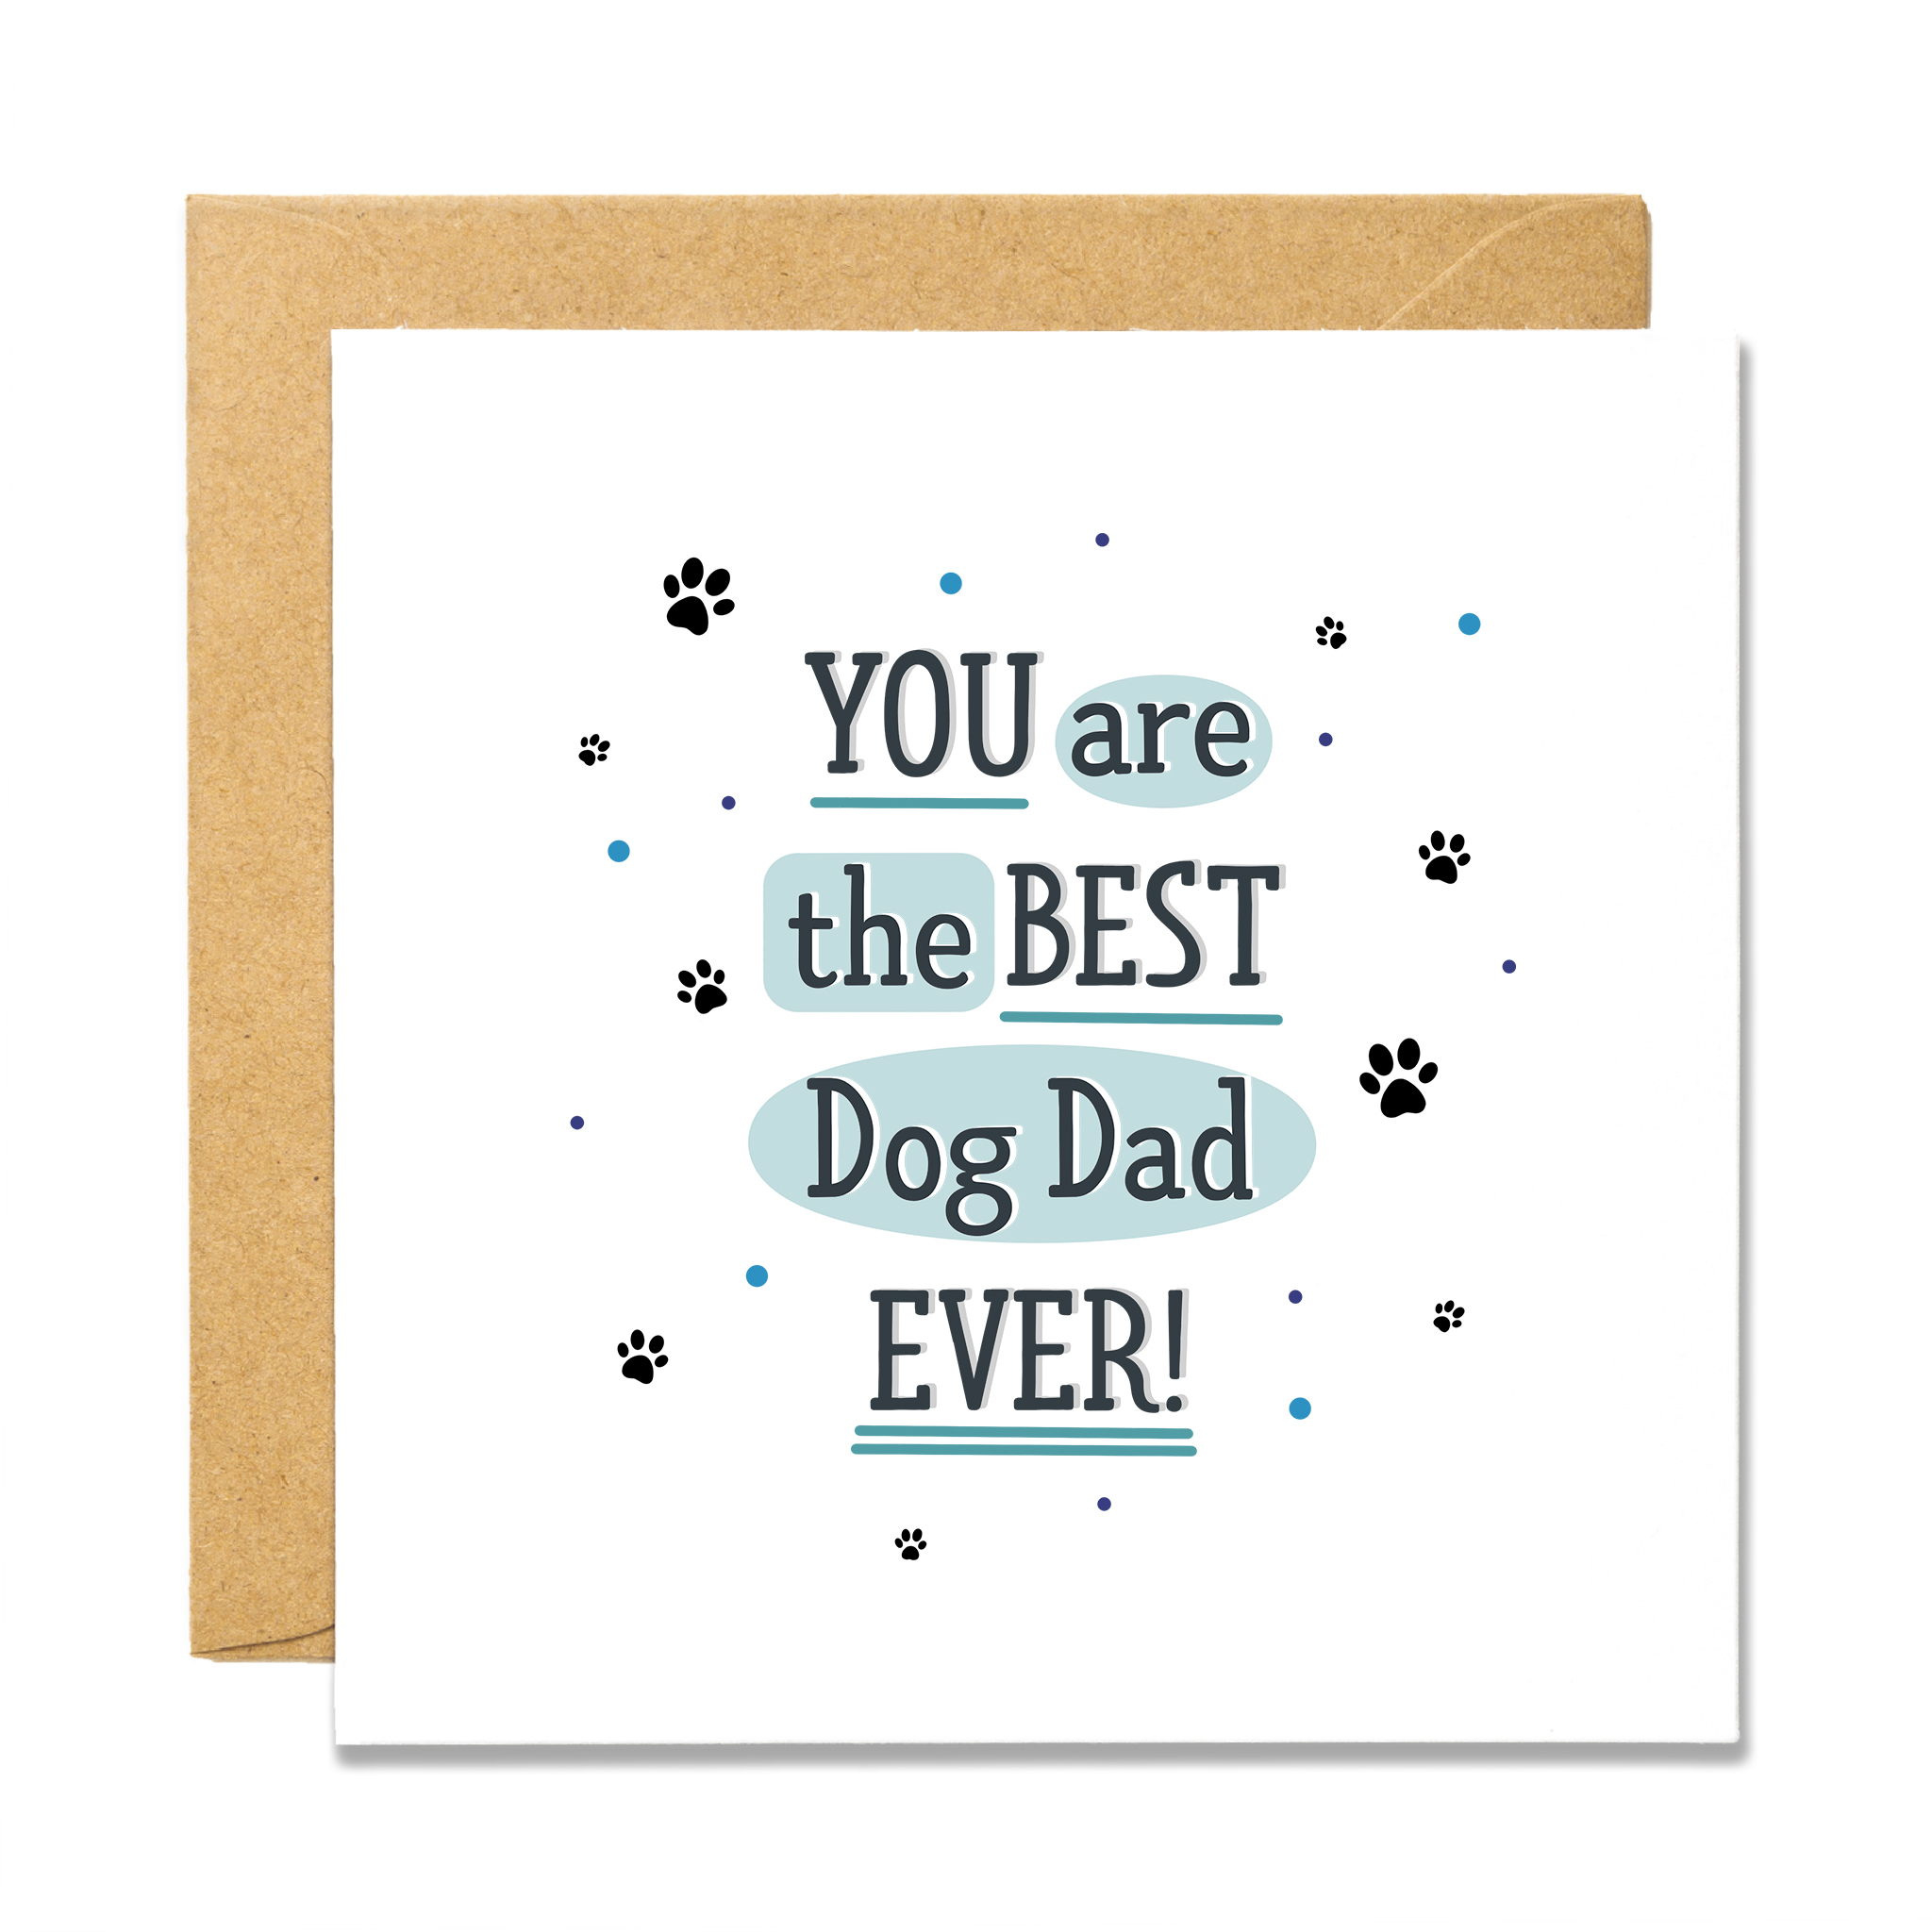 The Best Dog Dad Ever